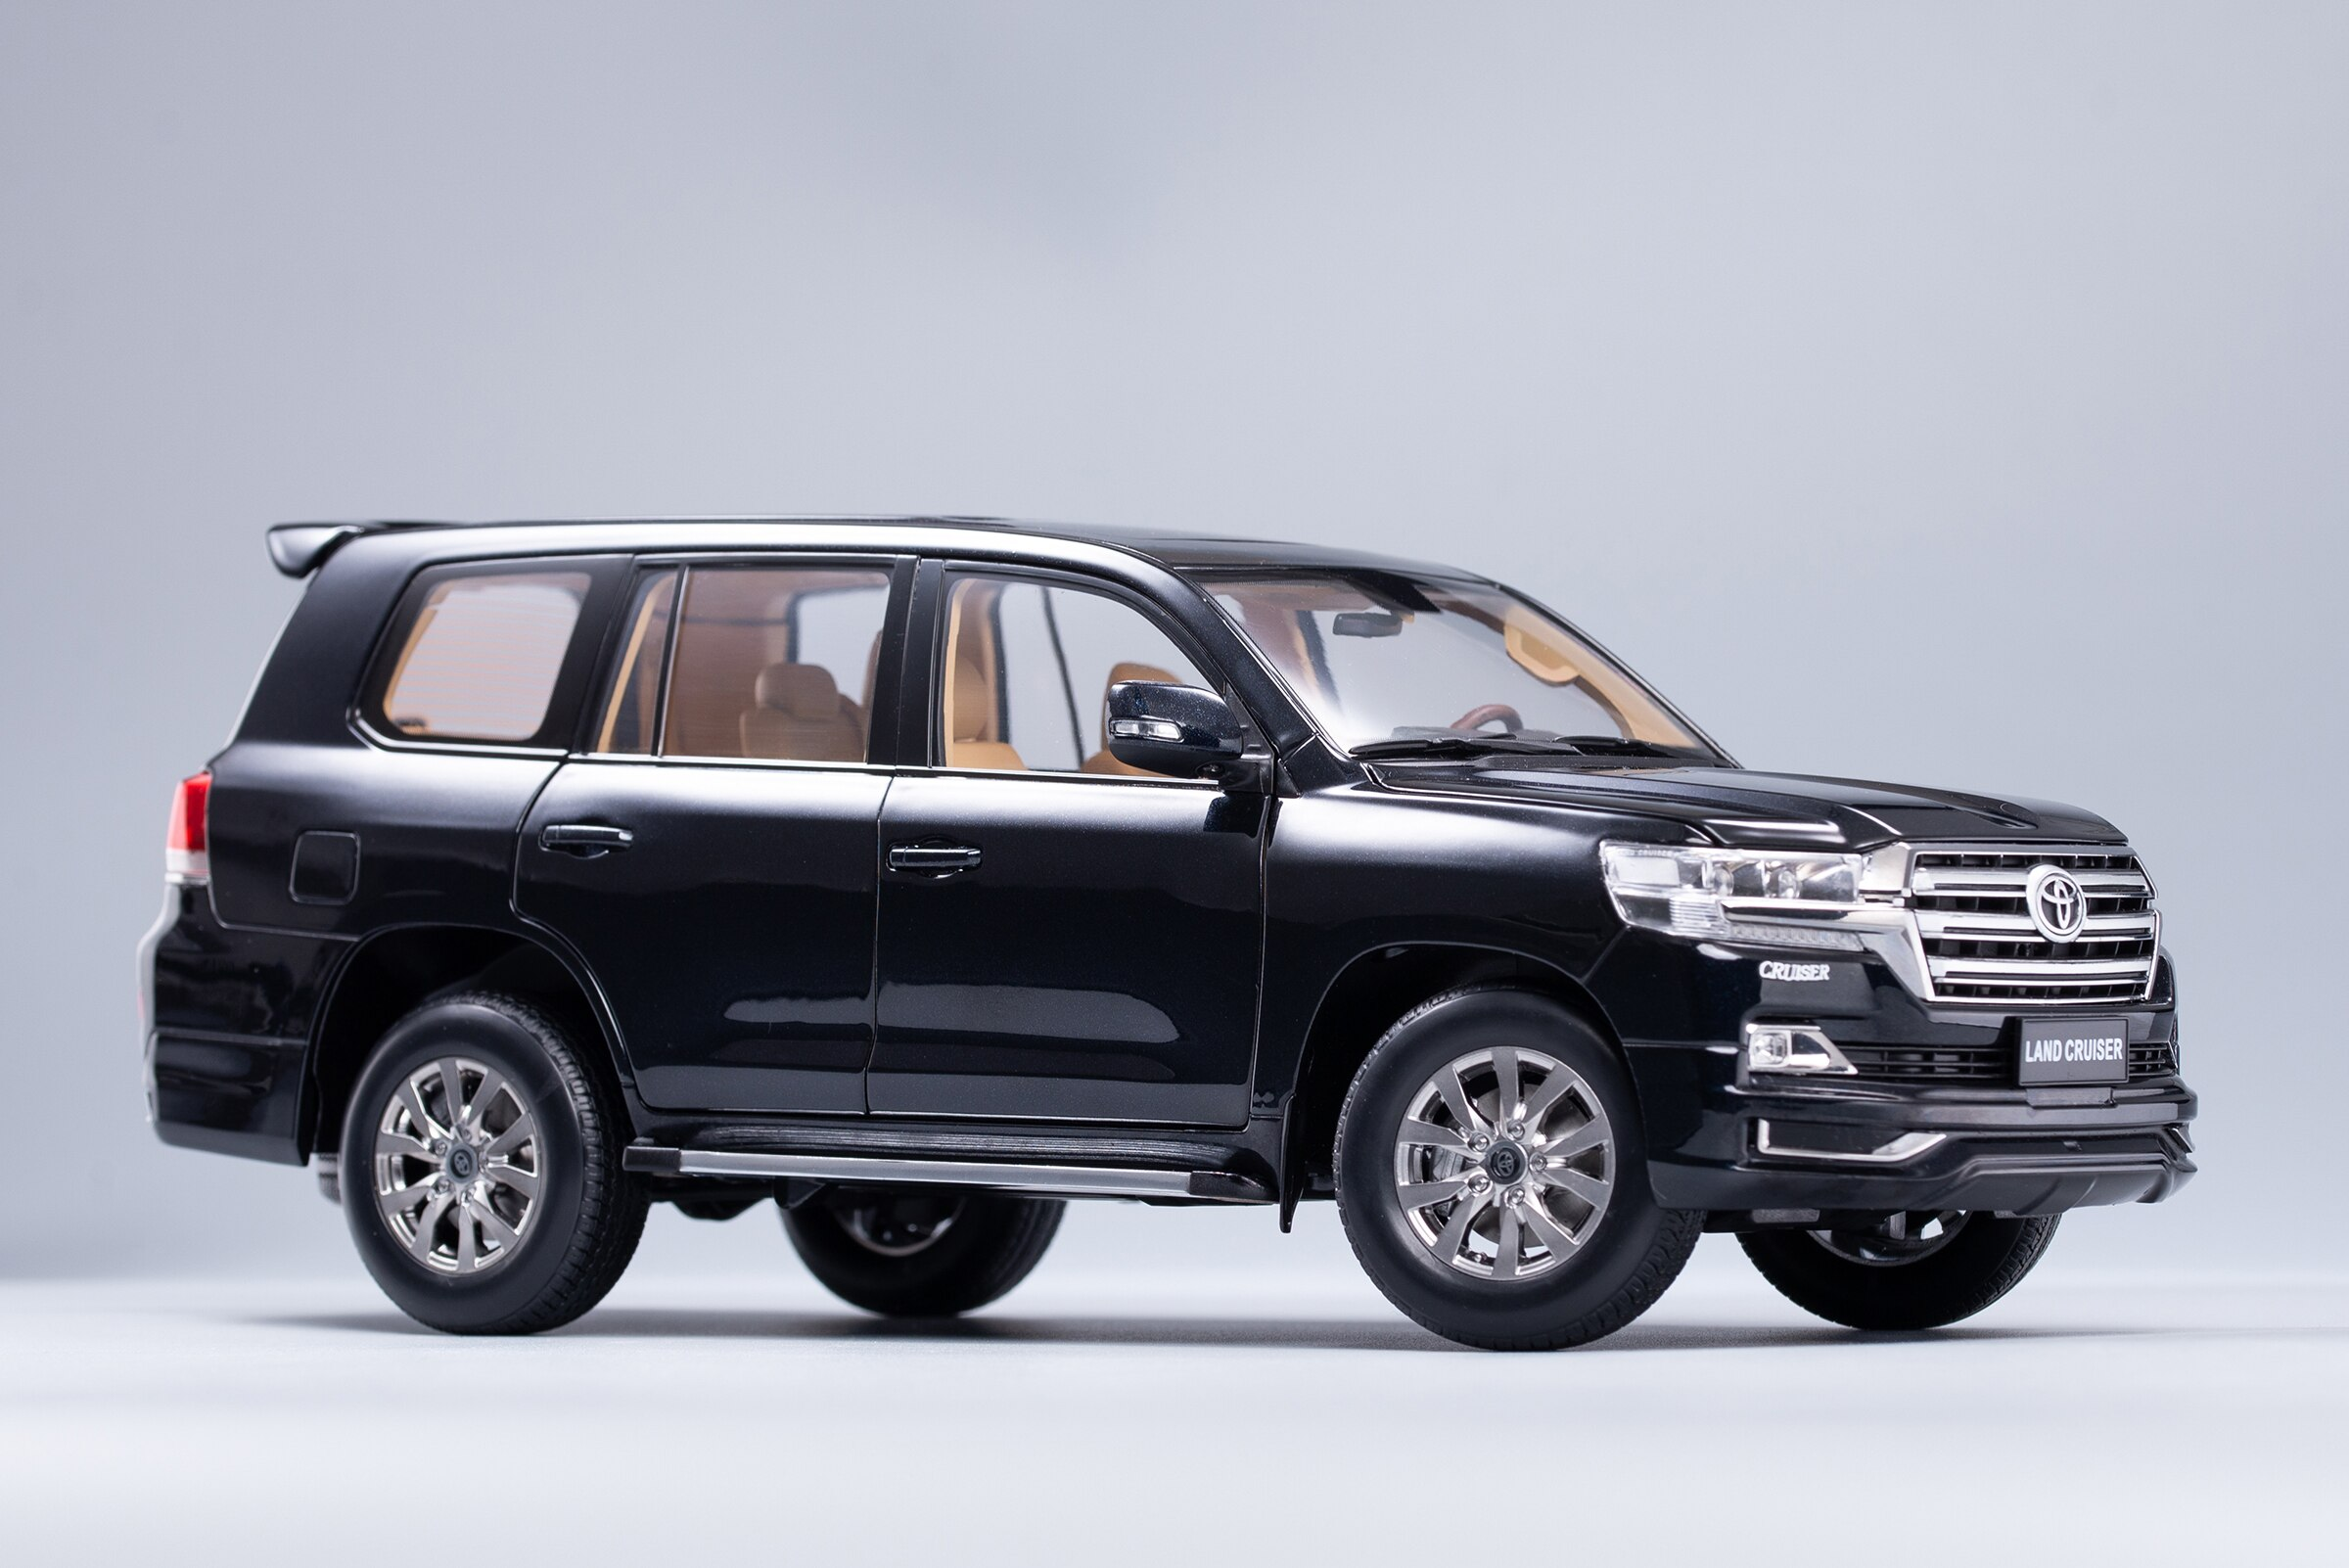 1:18 Diecast Model for Toyota Land Cruiser LC200 2019 Black SUV Alloy Toy Car Miniature Collection Gift